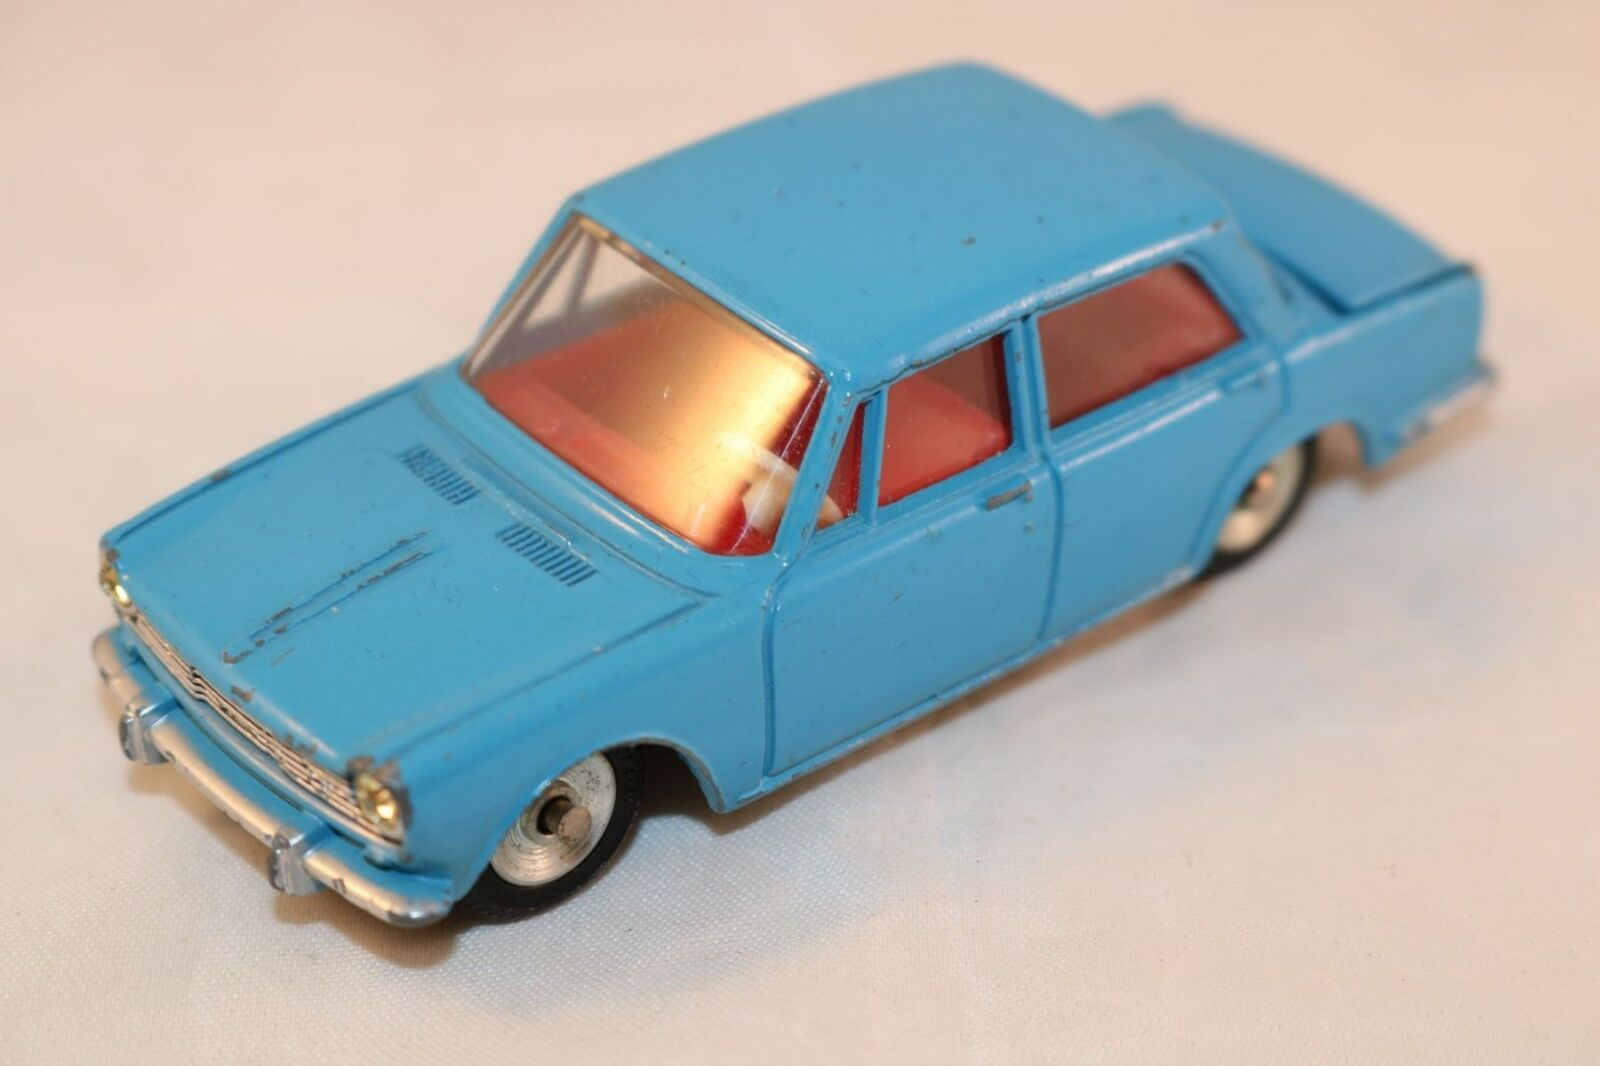 Dinky Toys 523 Simca 1500 rare colour blueee in excellent original condition.